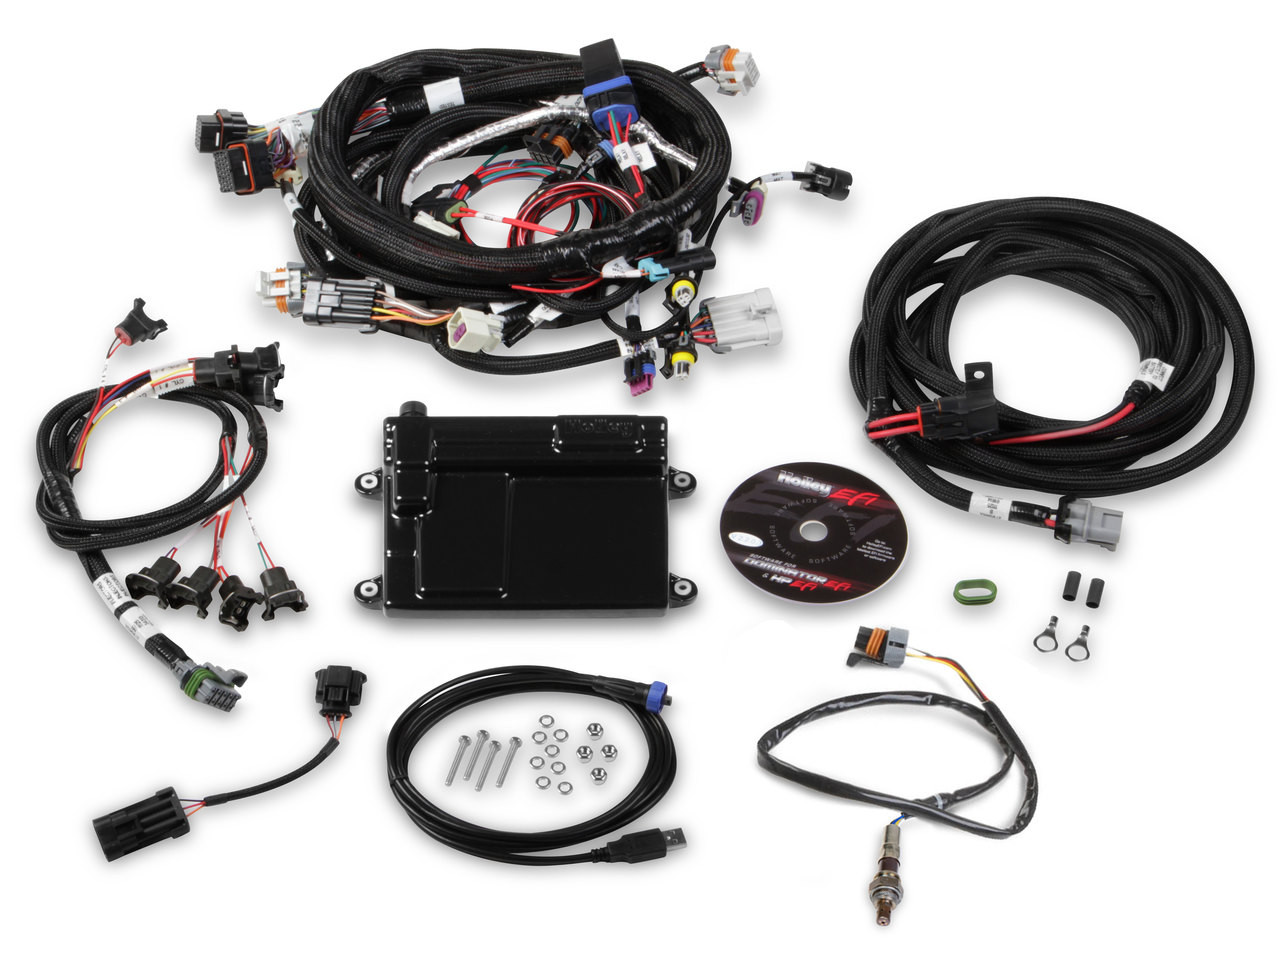 small resolution of holley hp efi plug and play ecu and harness kit for gm ls2 ls3